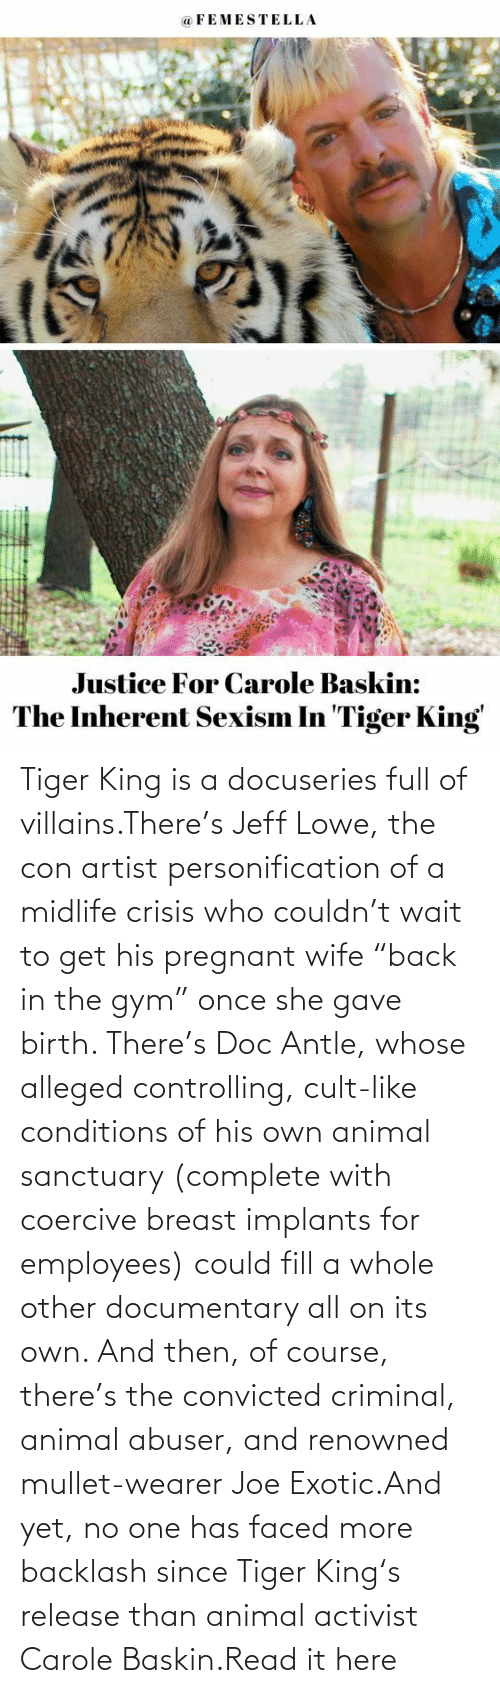 """birth: Tiger King is a docuseries full of villains.There's Jeff Lowe, the con artist personification of a midlife crisis who couldn't wait to get his pregnant wife """"back in the gym"""" once she gave birth. There's Doc Antle, whose alleged controlling, cult-like conditions of his own animal sanctuary (complete with coercive breast implants for employees) could fill a whole other documentary all on its own. And then, of course, there's the convicted criminal, animal abuser, and renowned mullet-wearer Joe Exotic.And yet, no one has faced more backlash since Tiger King's release than animal activist Carole Baskin.Read it here"""